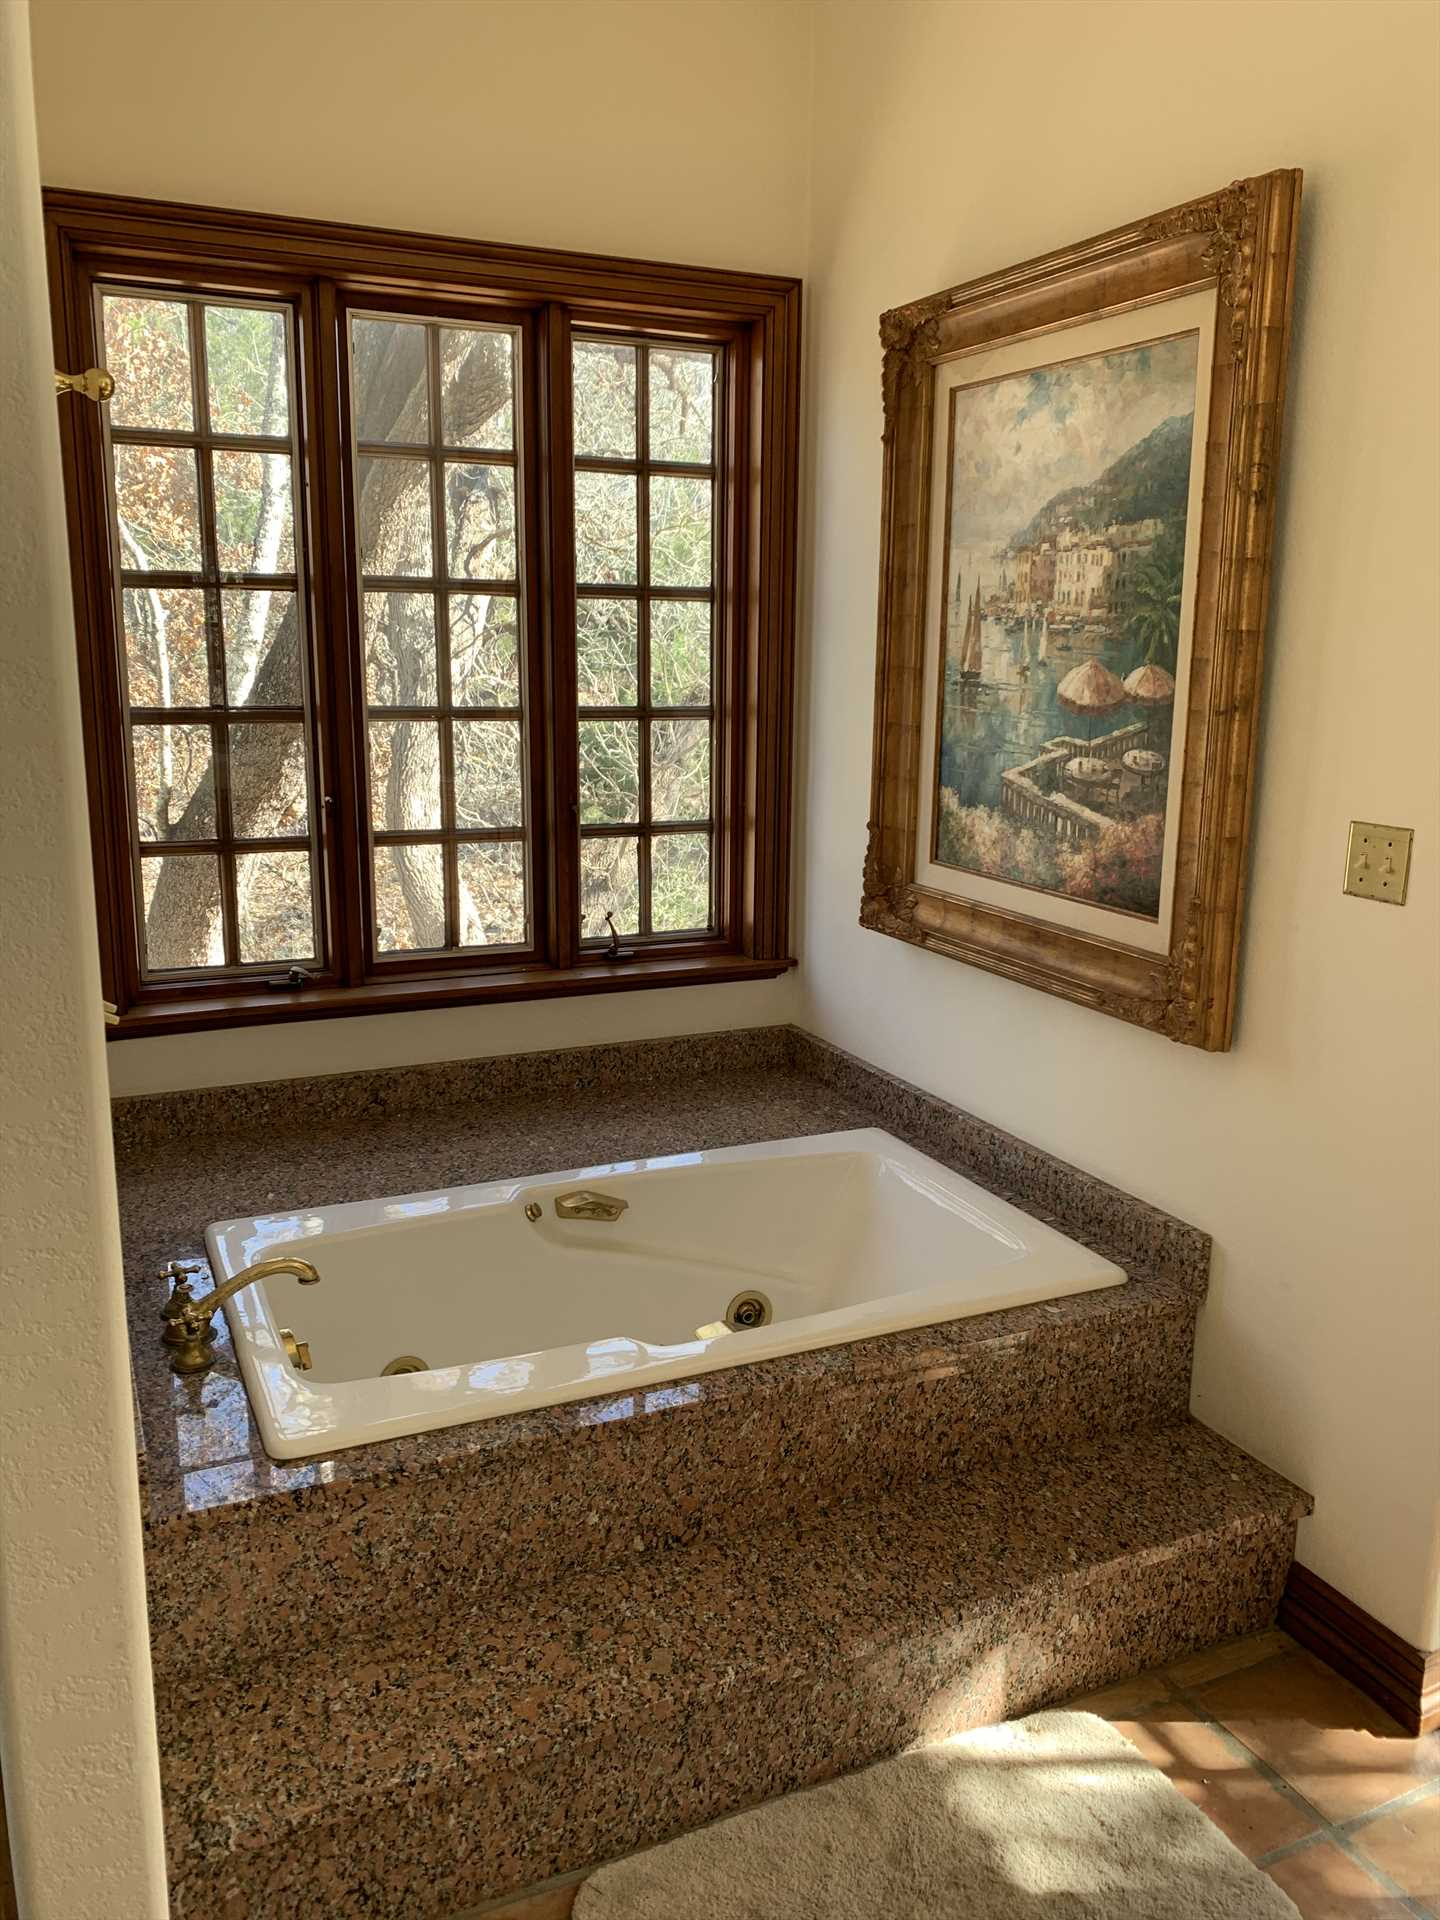 Sink in for a warm soak in the garden tub! This is a great little nook for some relaxing me-time.